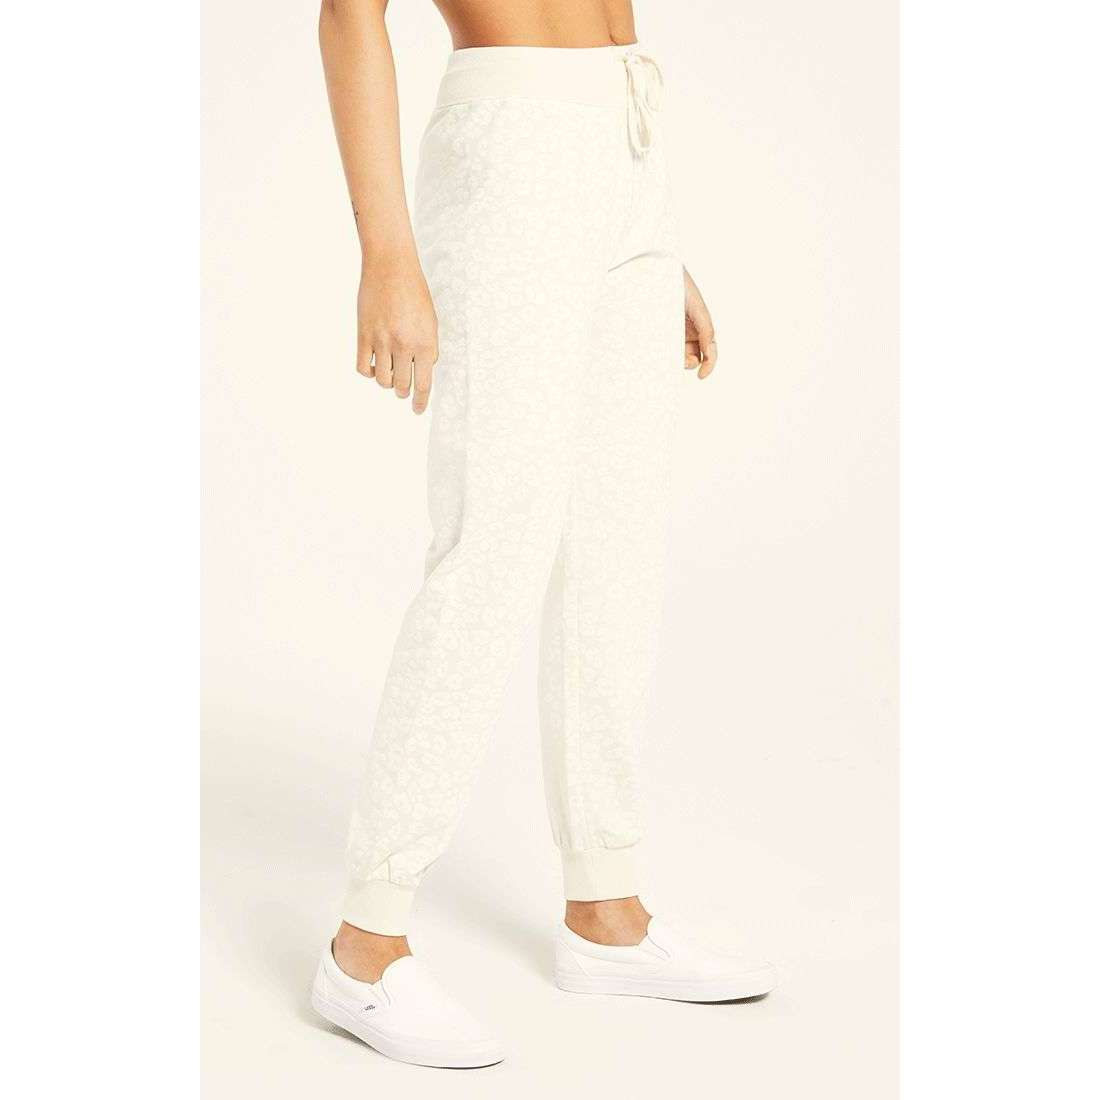 8.28 Boutique:Z-Supply,Z-Supply Ava Leopard Jogger in Bone,Bottoms